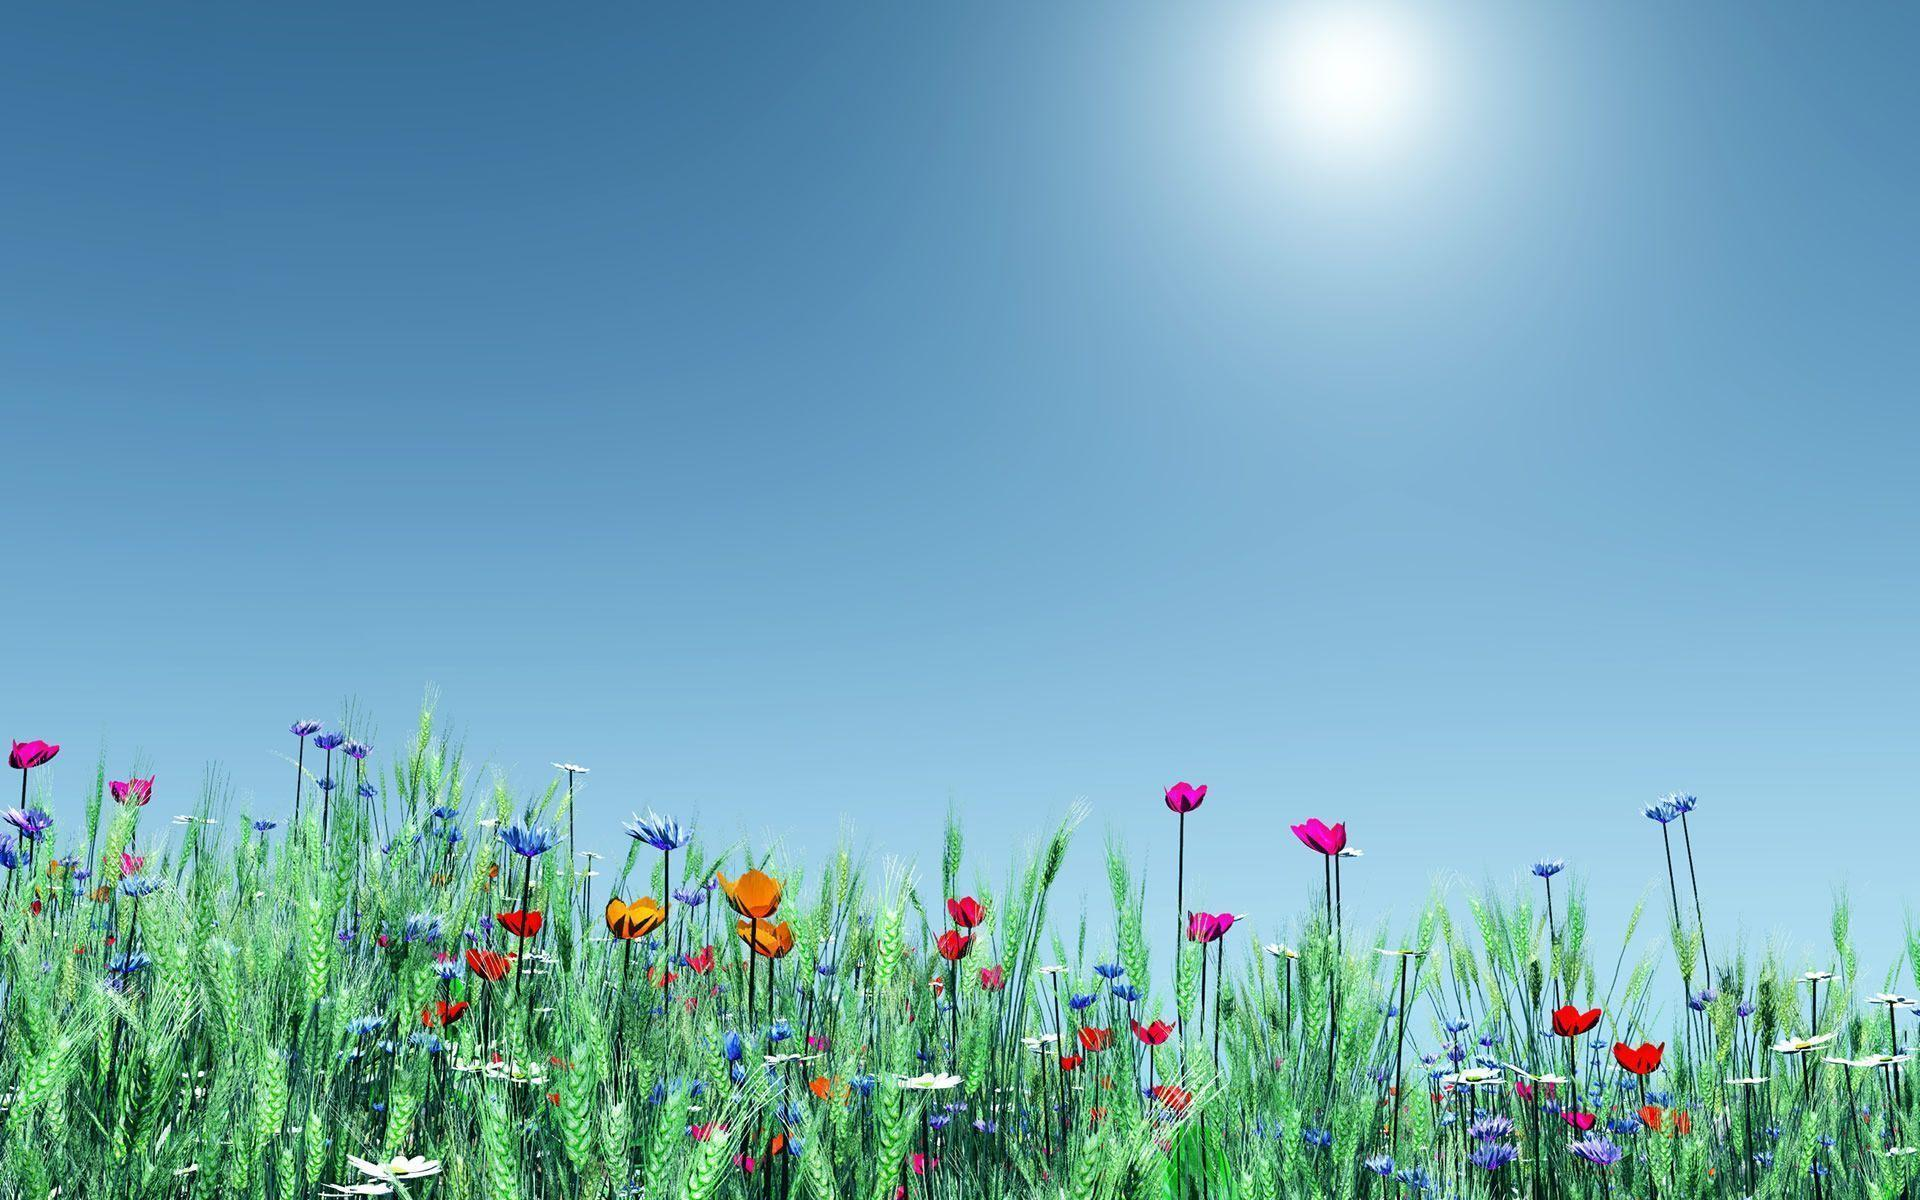 Spring Flowers Backgrounds Hd Backgrounds 9 HD Wallpapers